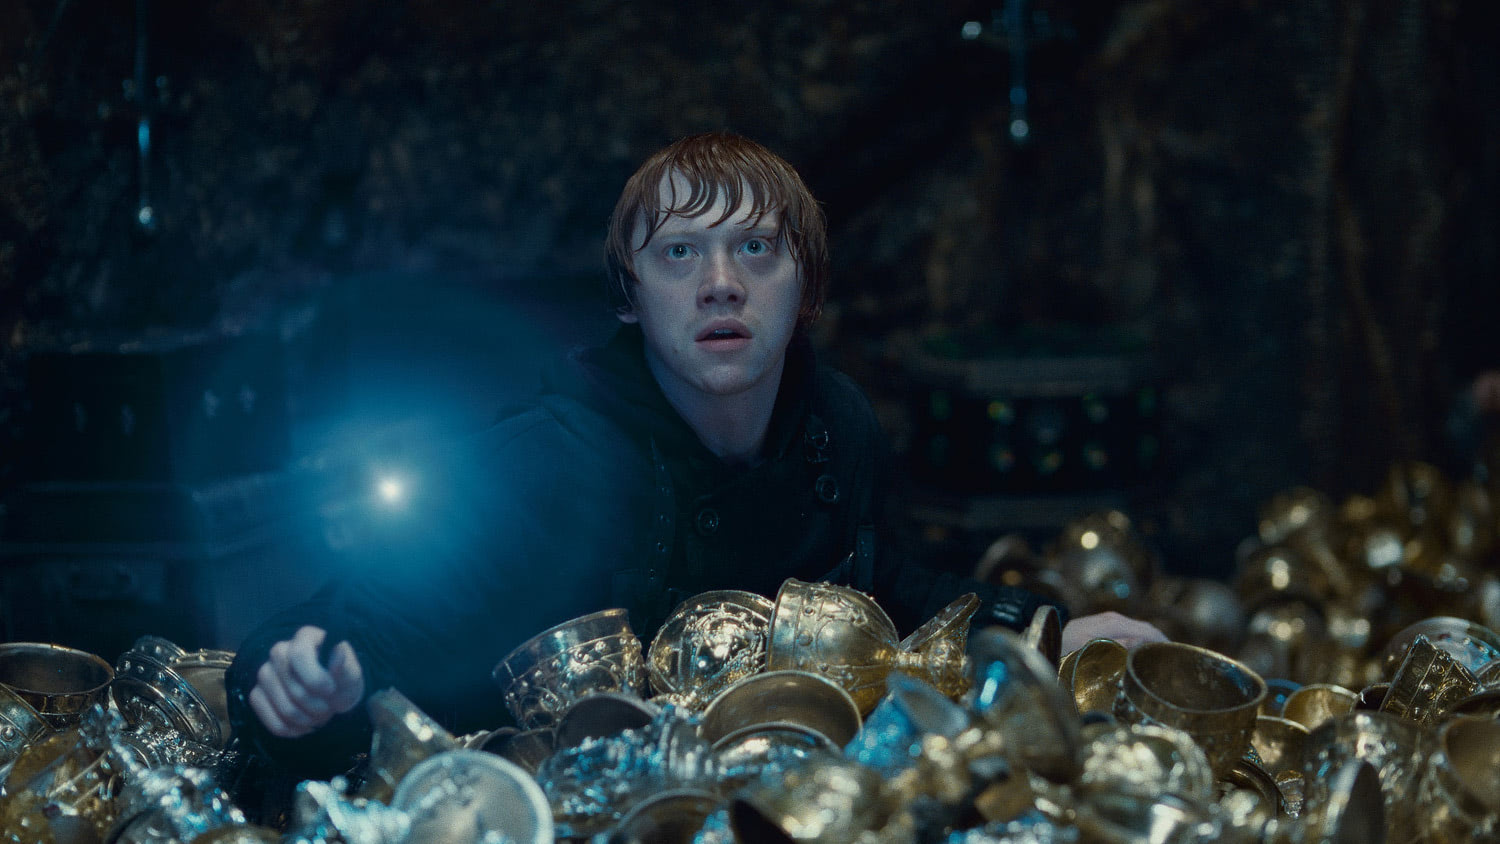 Ron in the Lestrange Vault